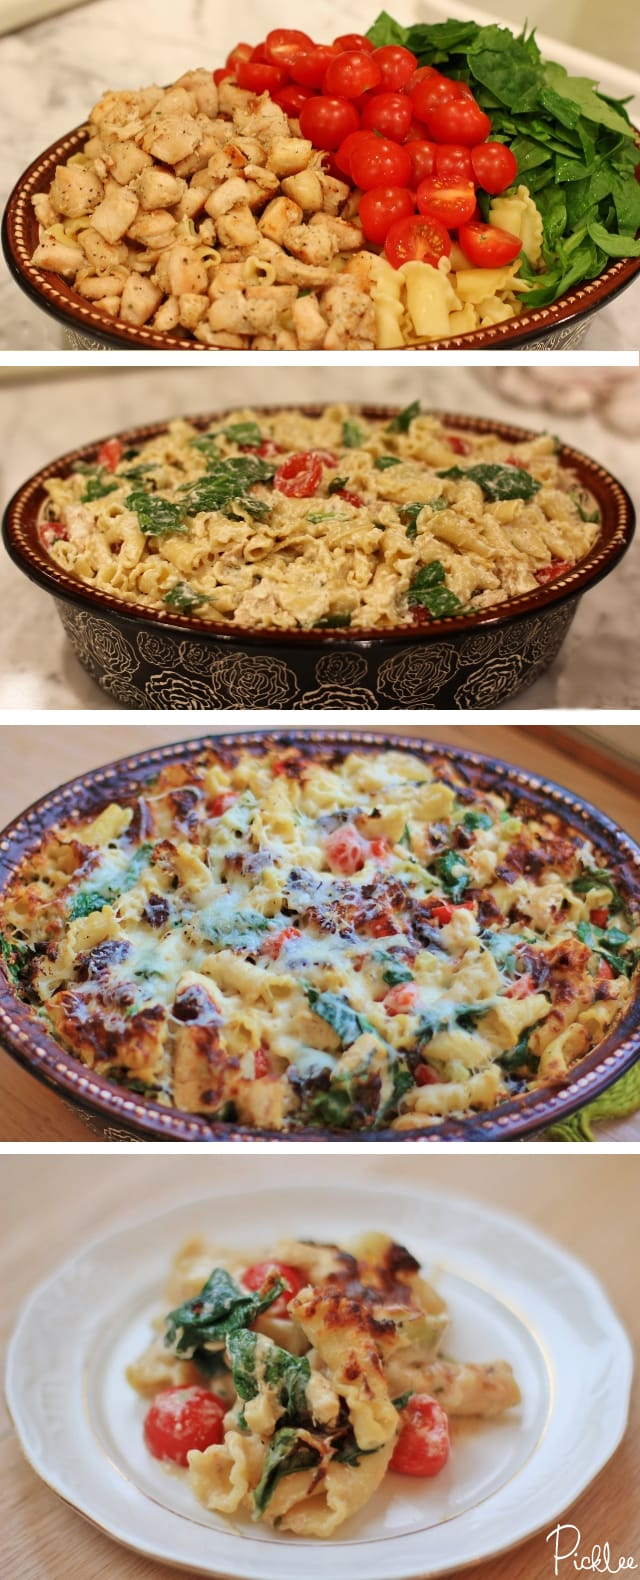 chicken-spinach-tomato-pasta bake recipe